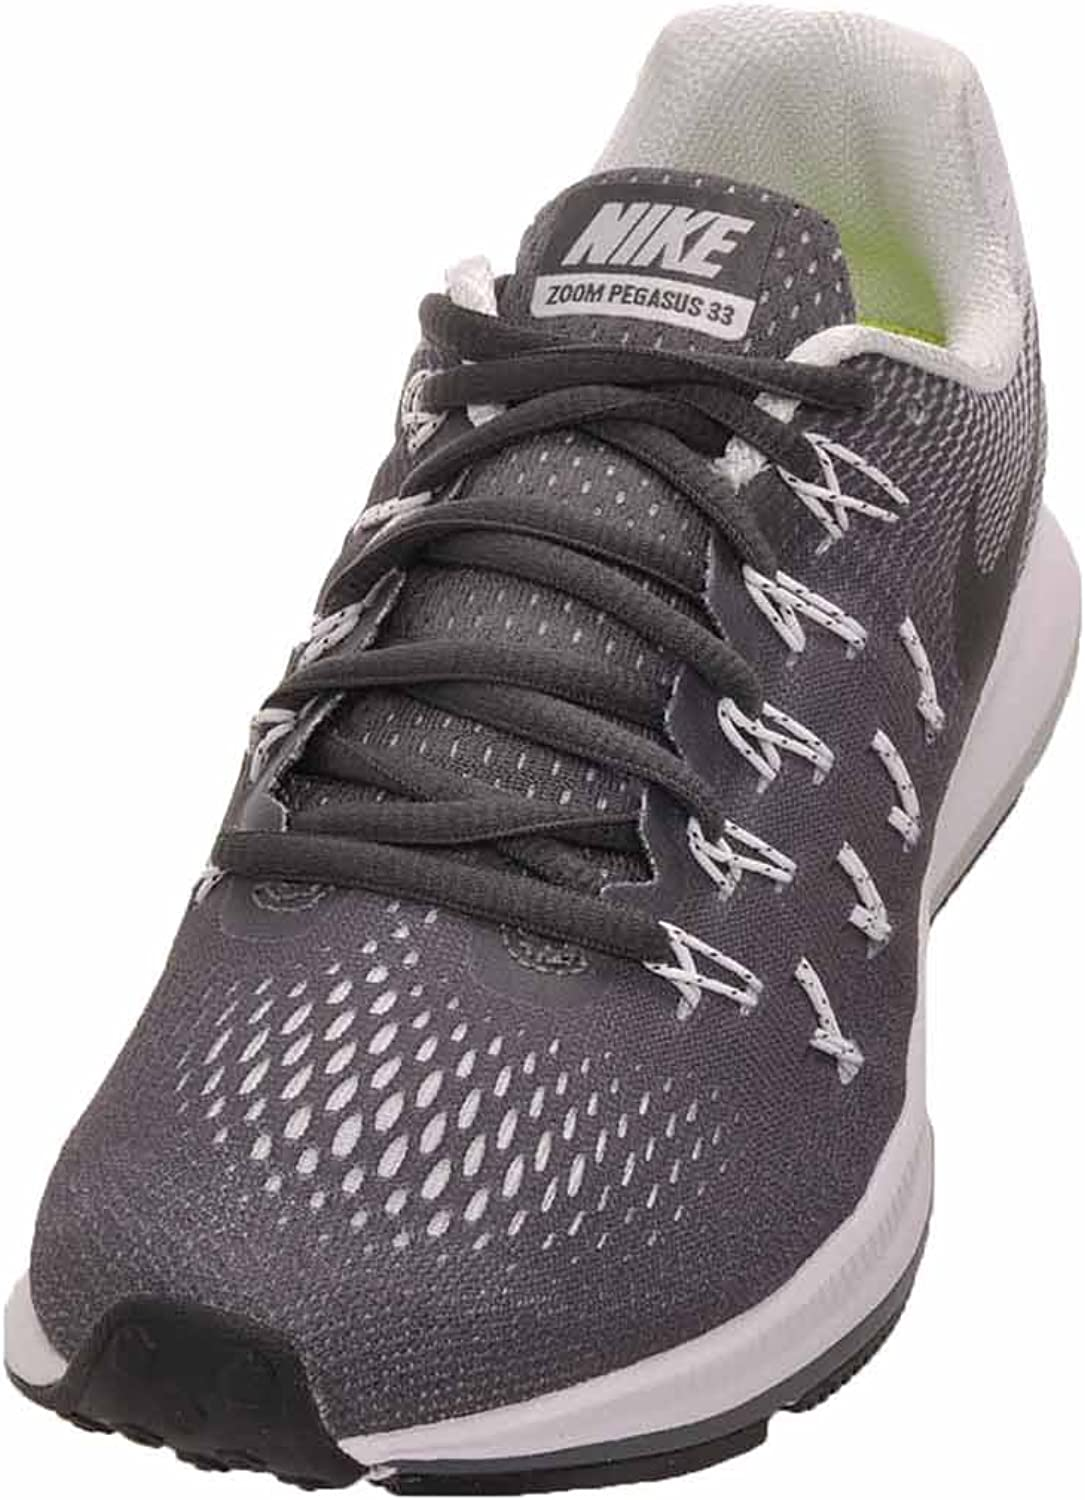 Nike Wmns Air Zoom Pegasus 33, Zapatillas de Running Unisex Adulto, Gris (Gris (Dark Grey/Black-White), 44 EU: Amazon.es: Zapatos y complementos